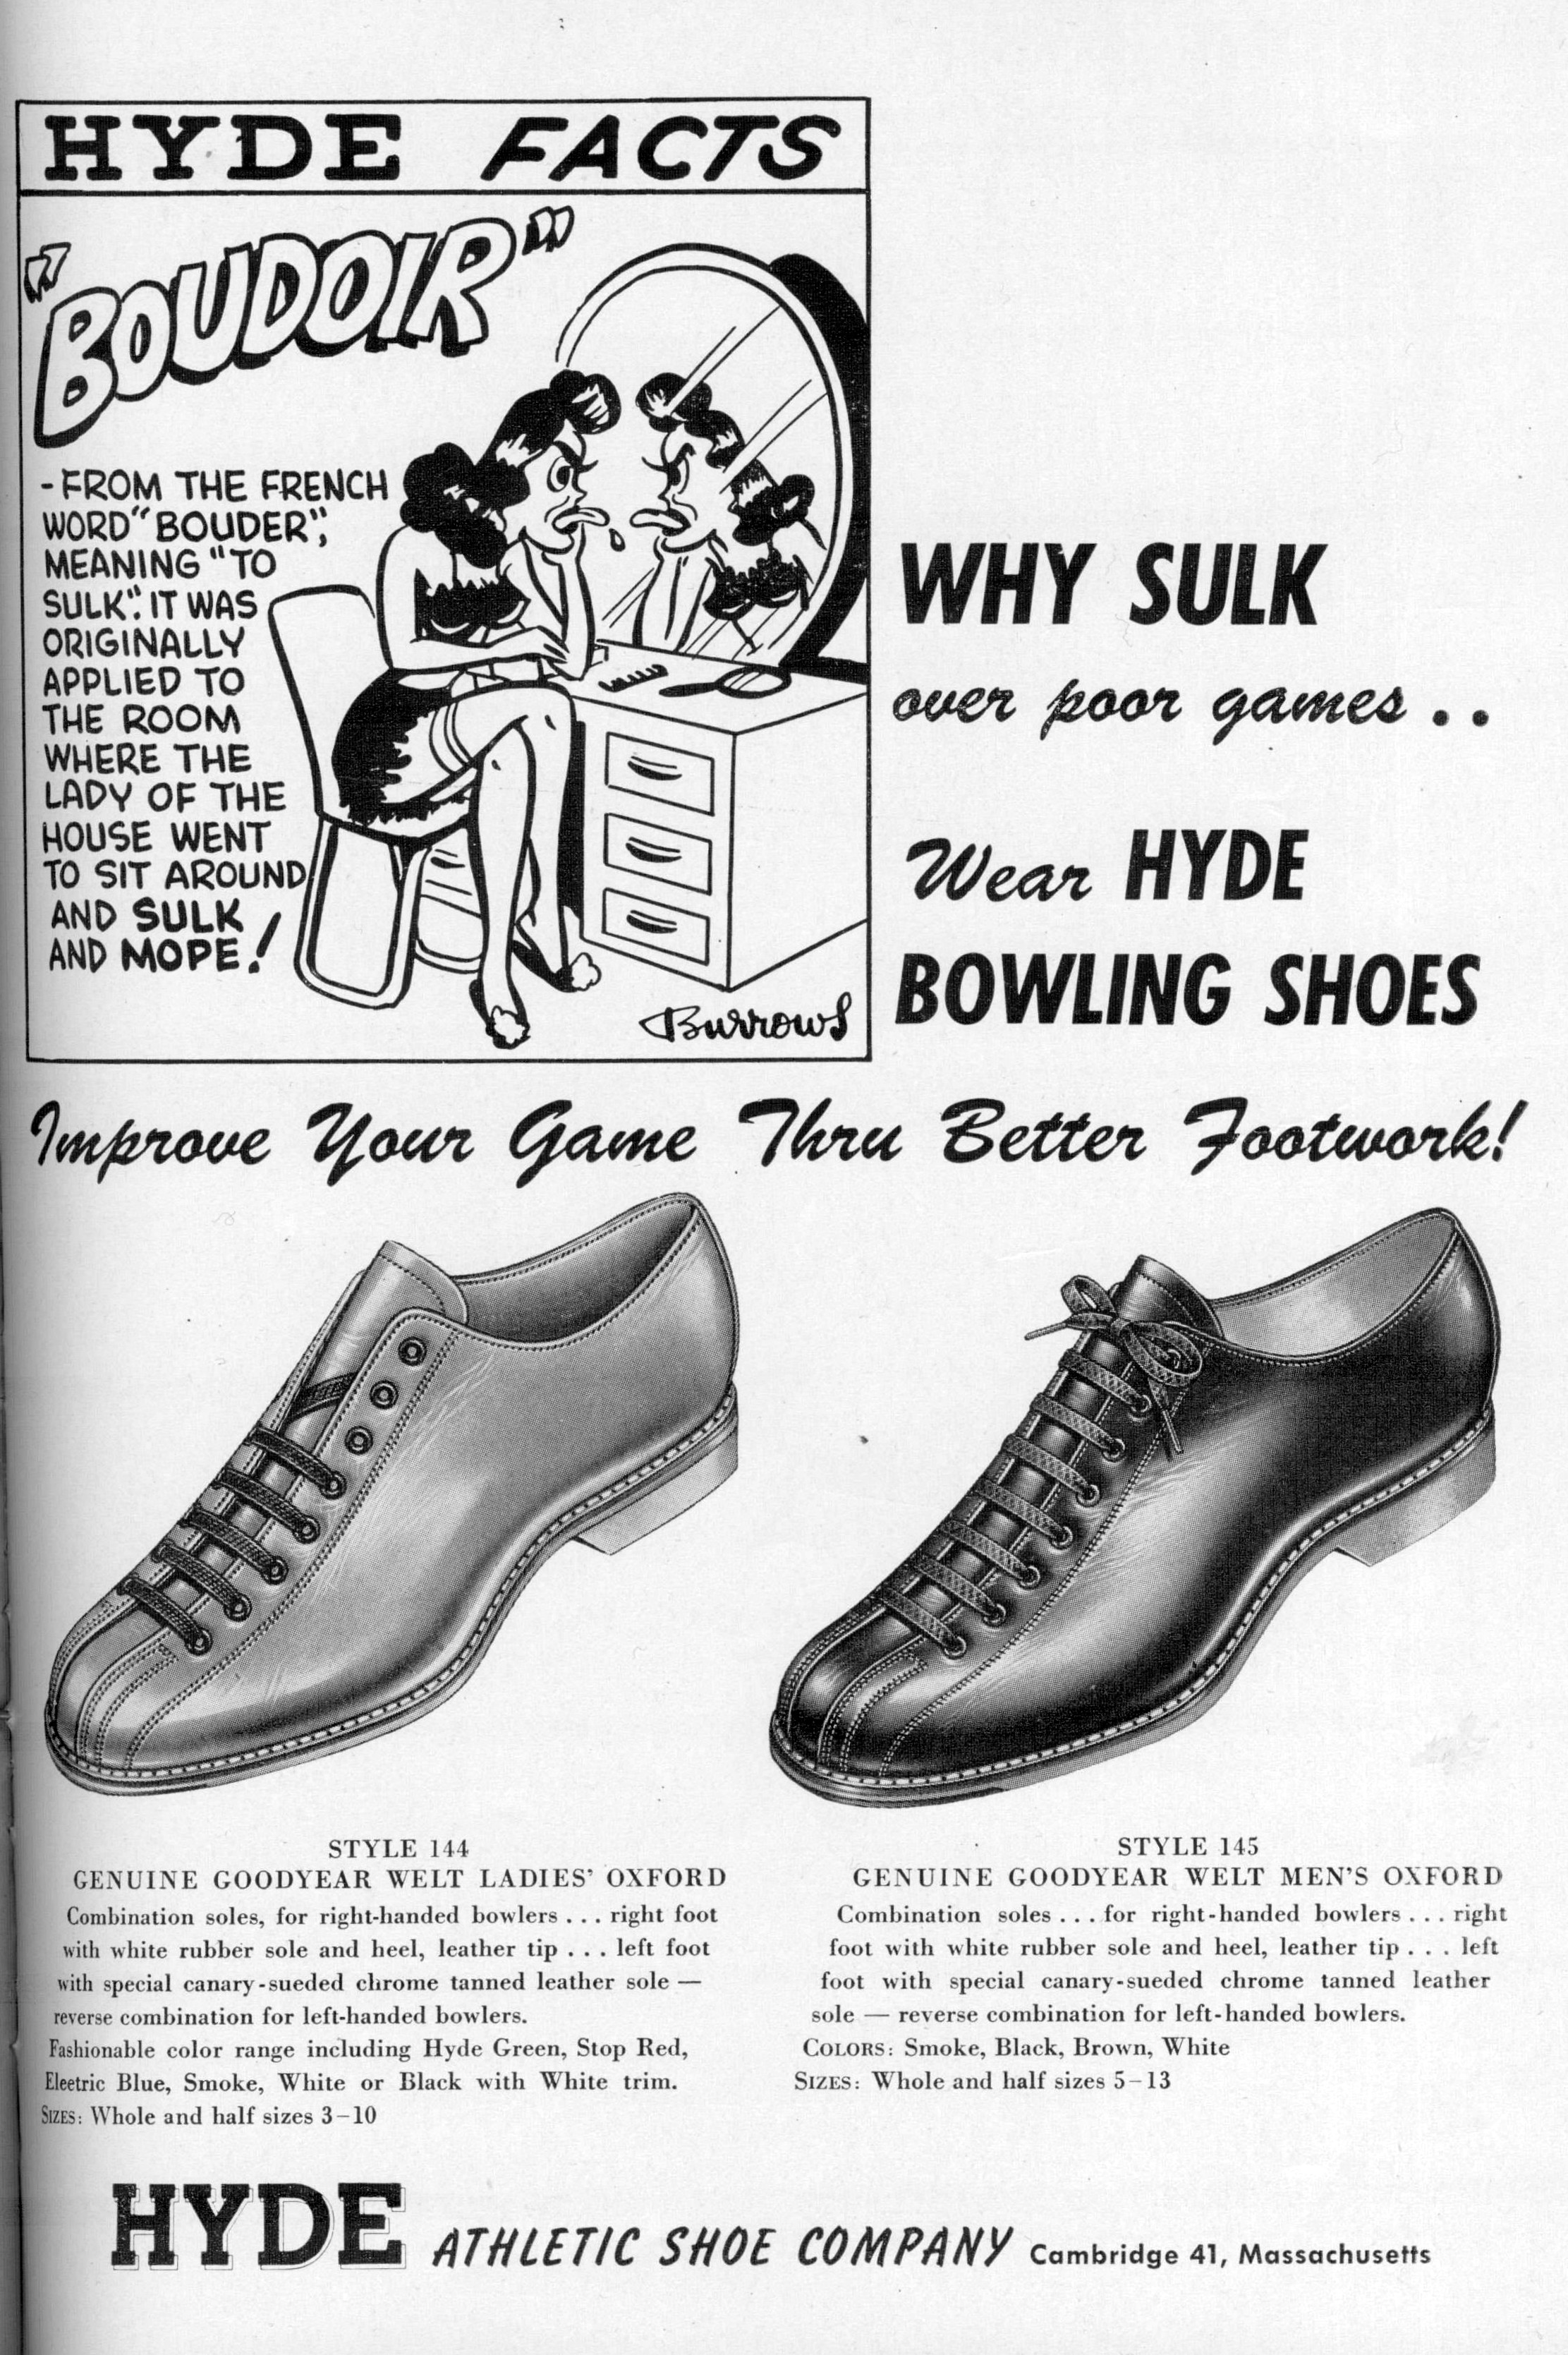 Hyde Bowling Shoes (1951) | Dr. Jake's Bowling History Blog